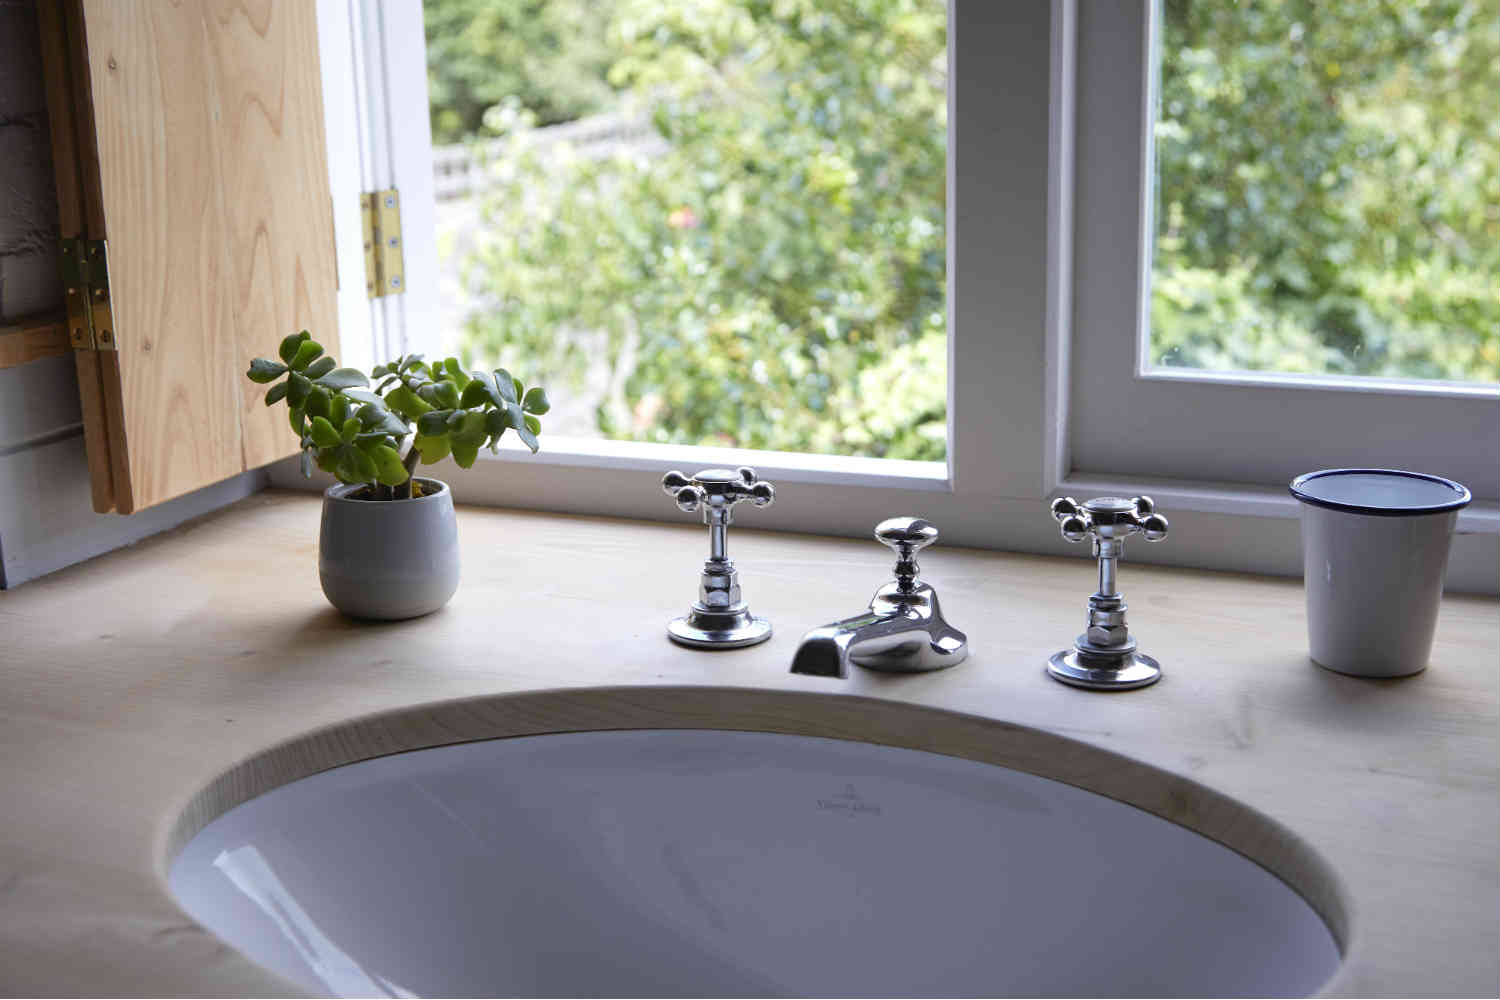 Bathroom sink overlooking pretty garden